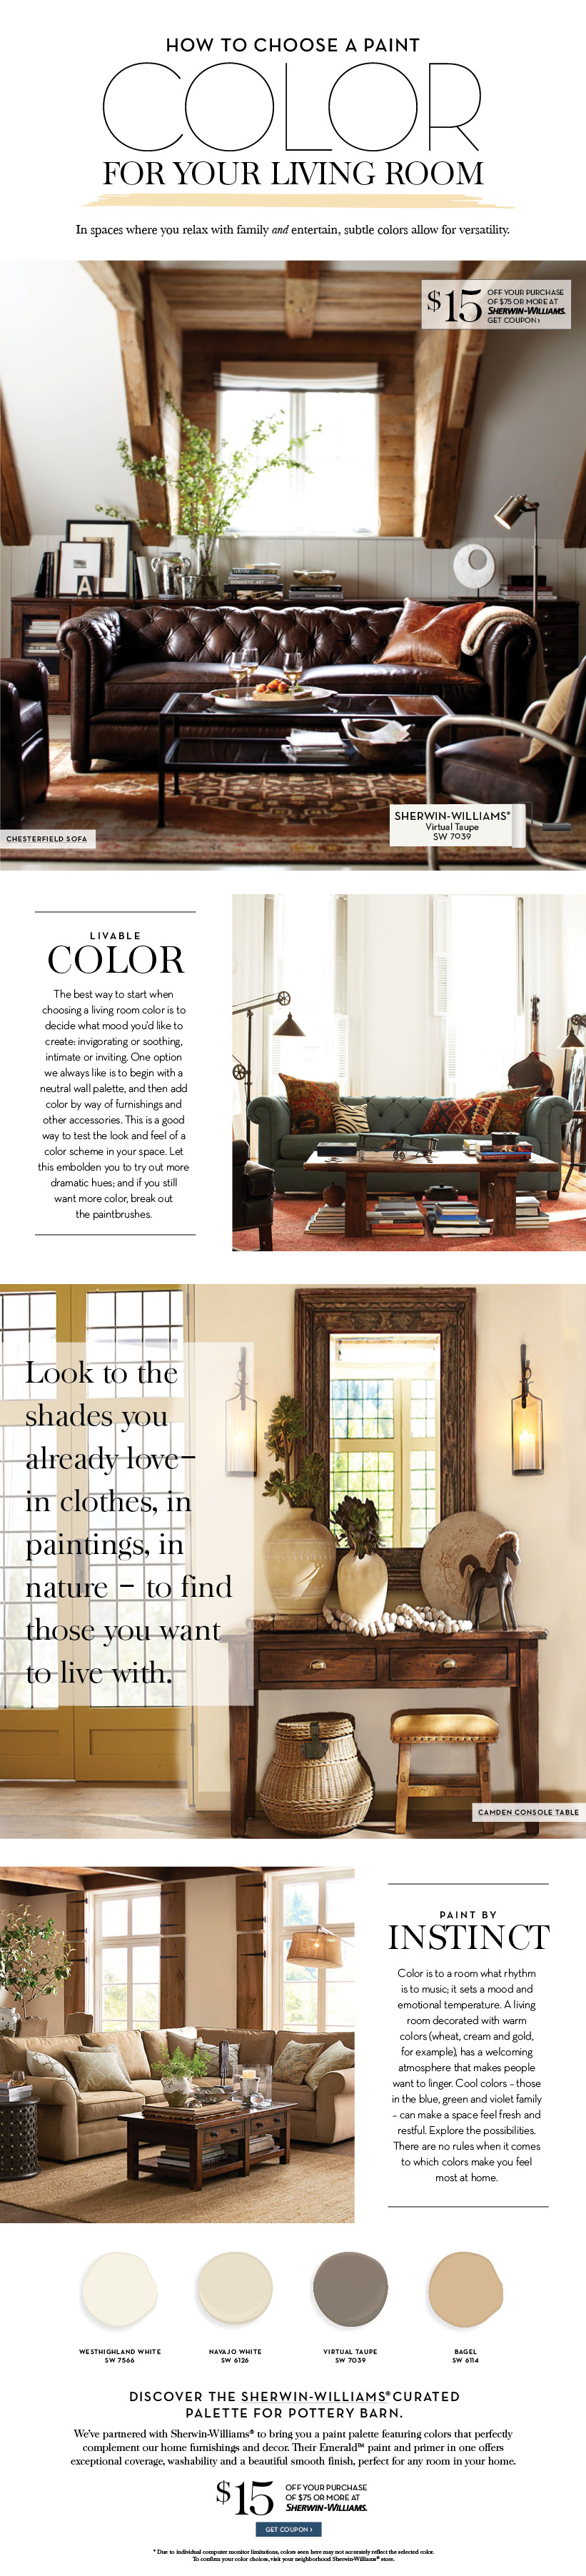 Choose a paint color for your living room pottery barn - How to pick a paint color for living room ...